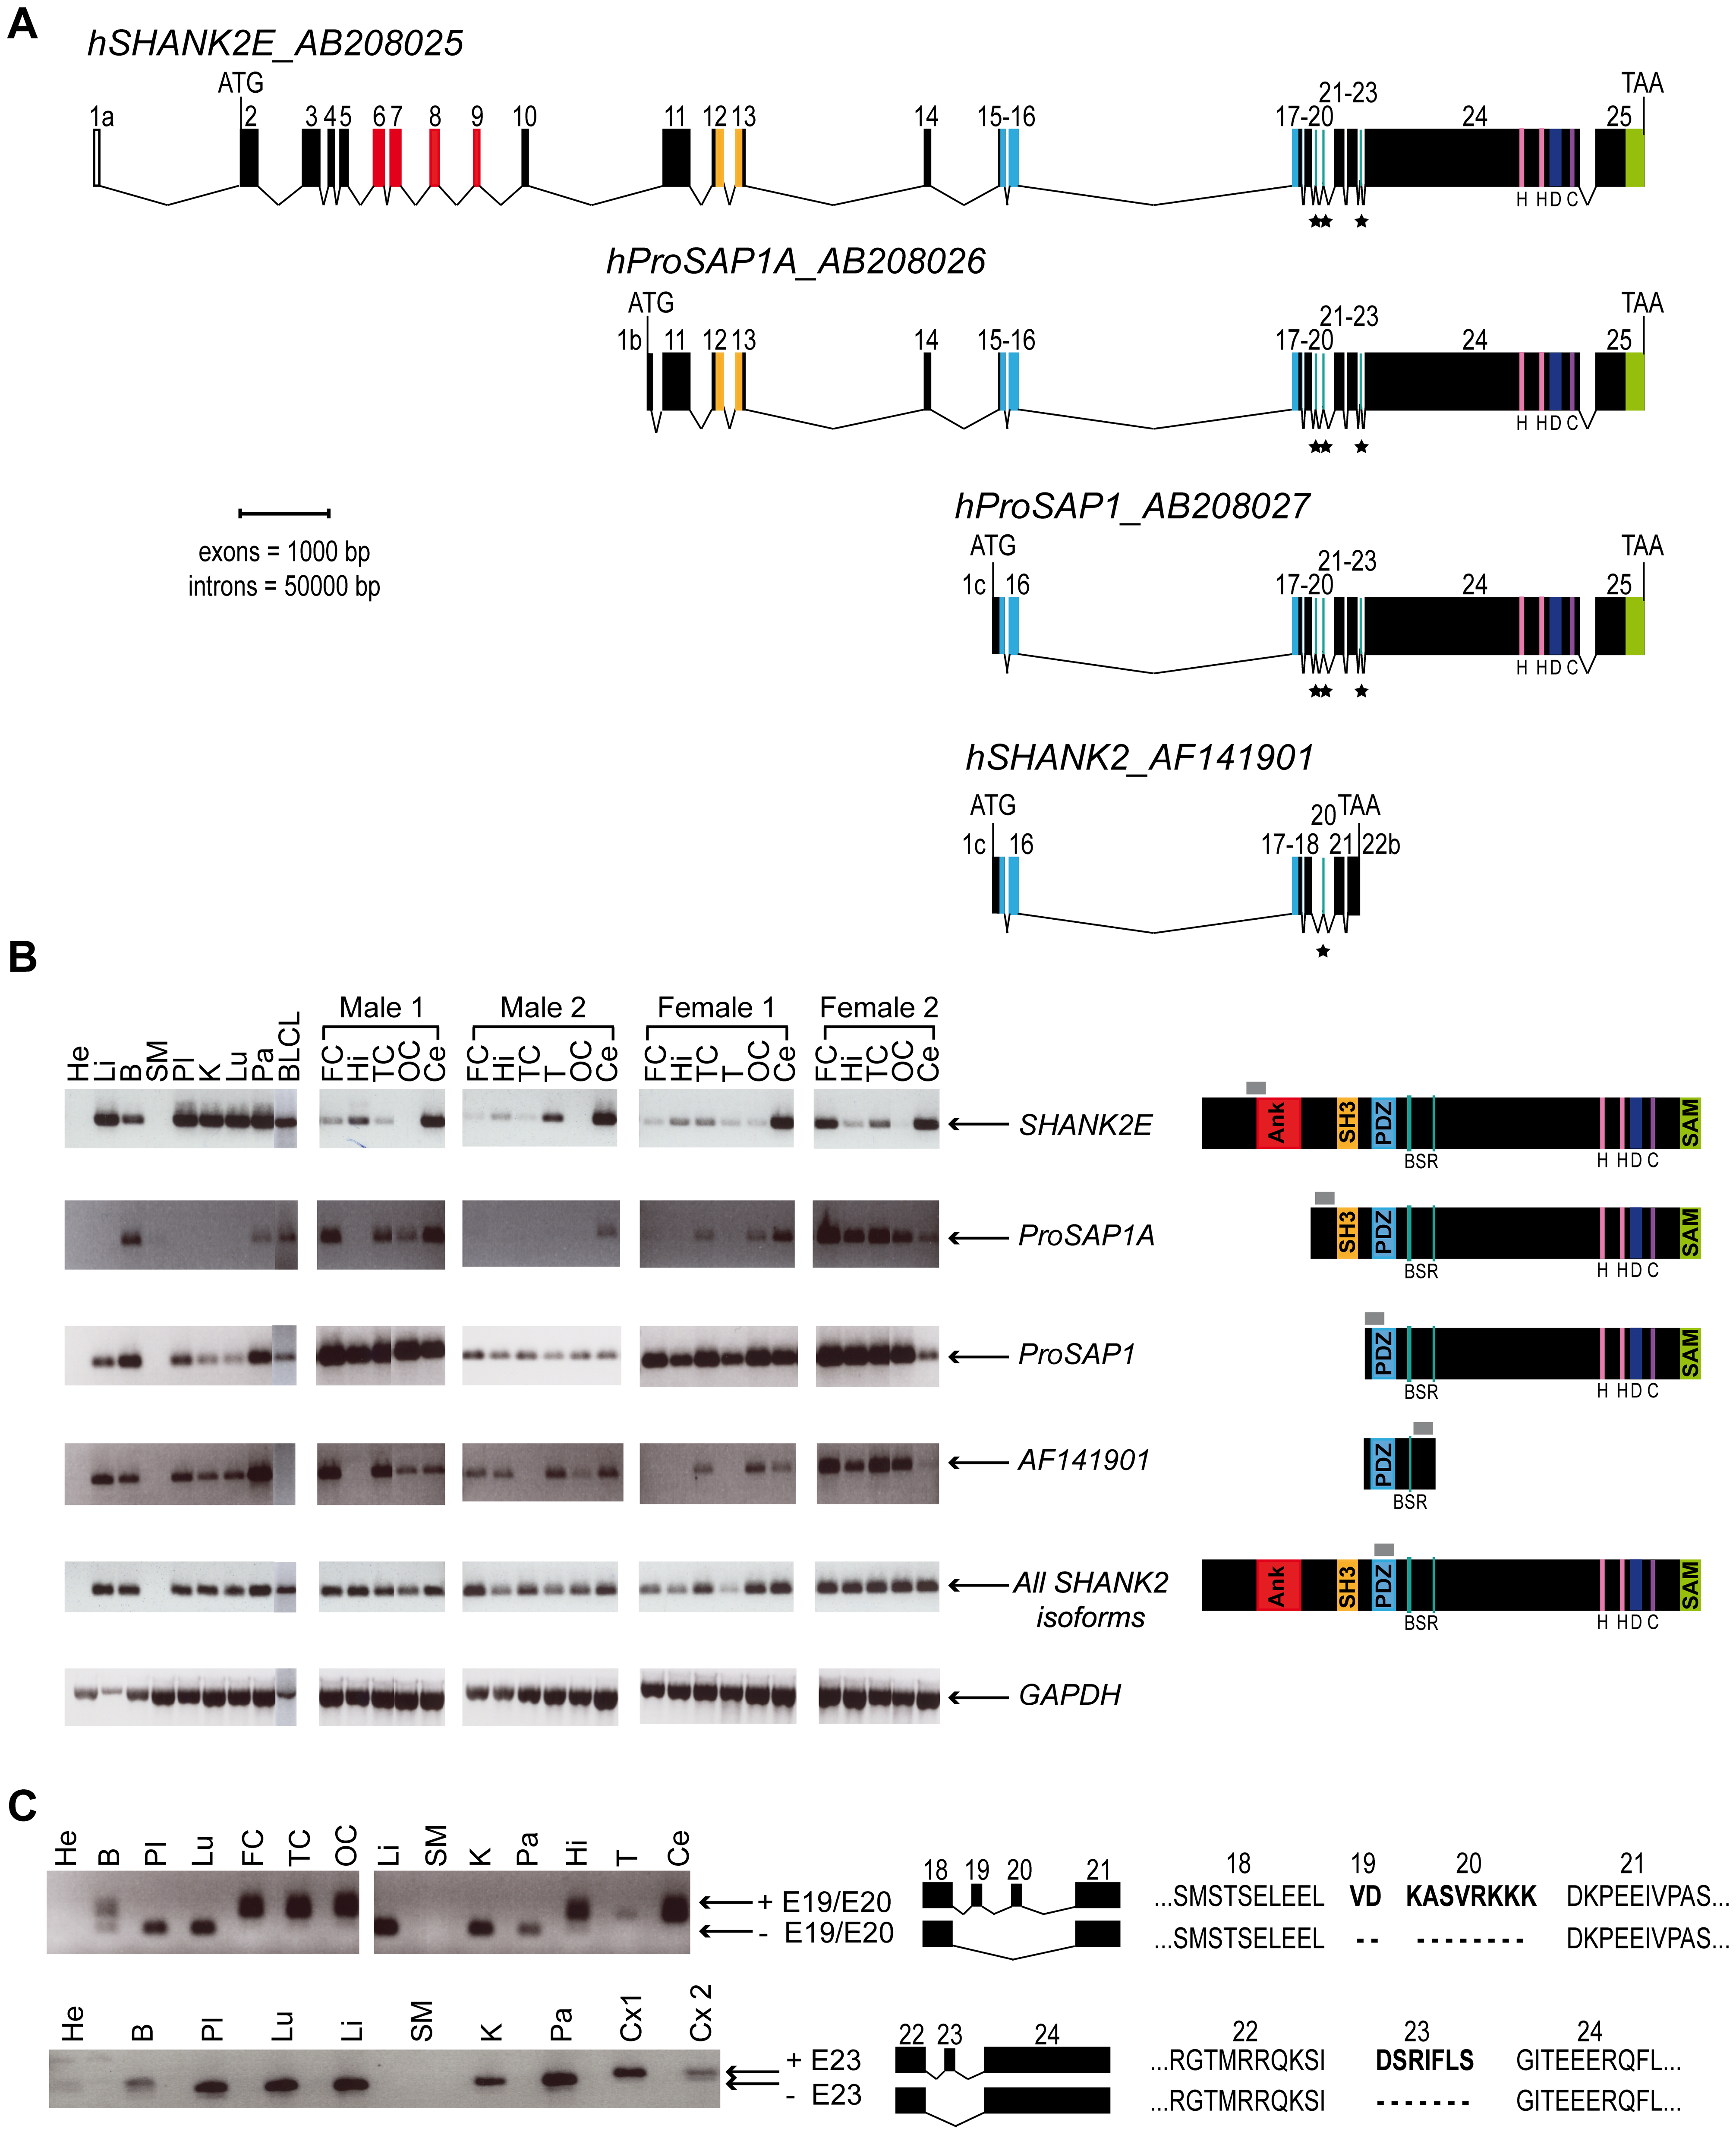 Genomic structure, isoforms, and expression of human <i>SHANK2</i>.